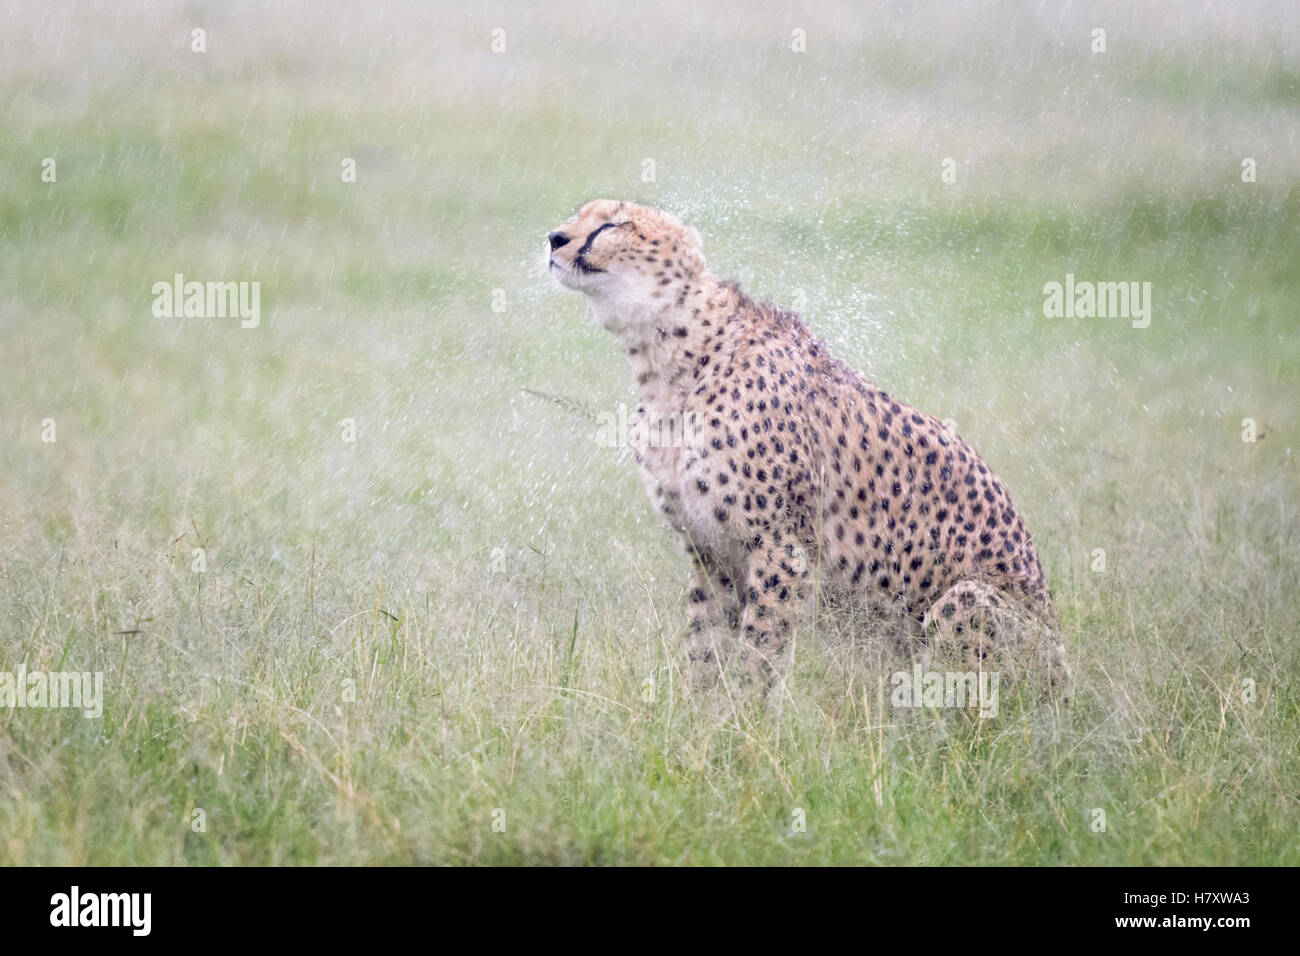 Cheetah (Acinonix jubatus) sitting on savanna during rainfall, shaking wet fur, Maasai Mara National Reserve, Kenya - Stock Image